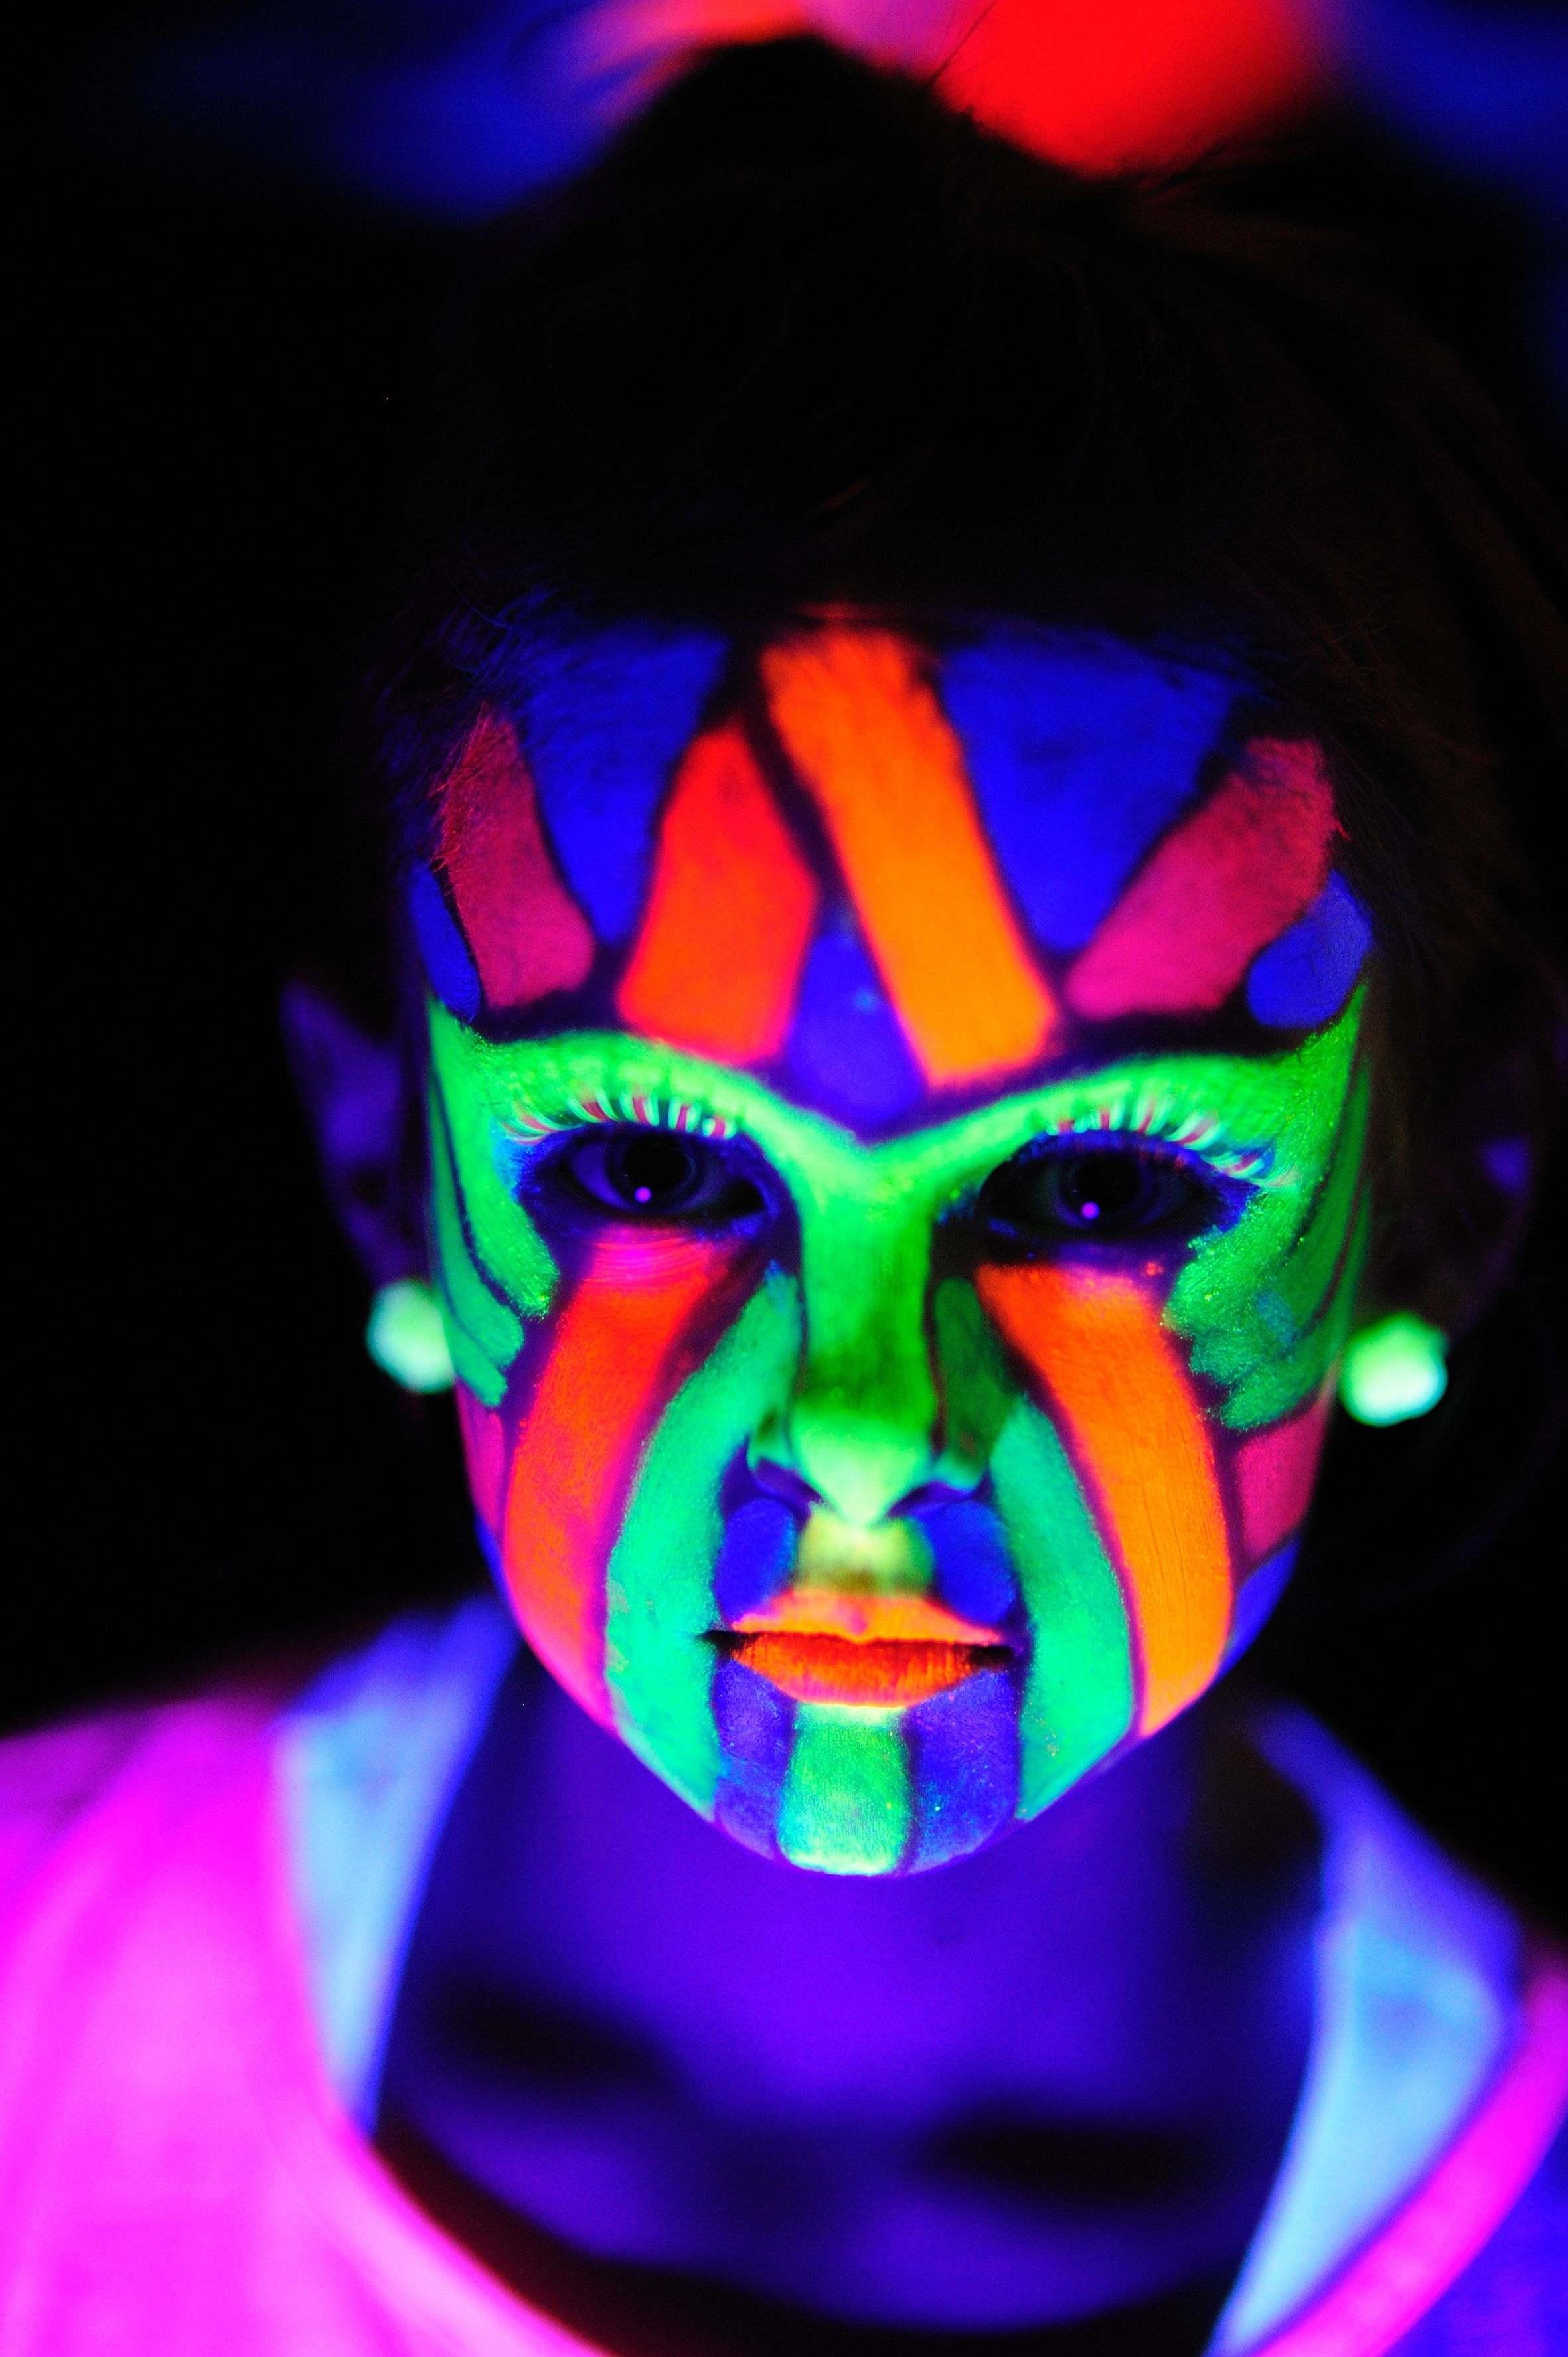 Black Light Makeup Electric Run Must Find One Of These Nearby